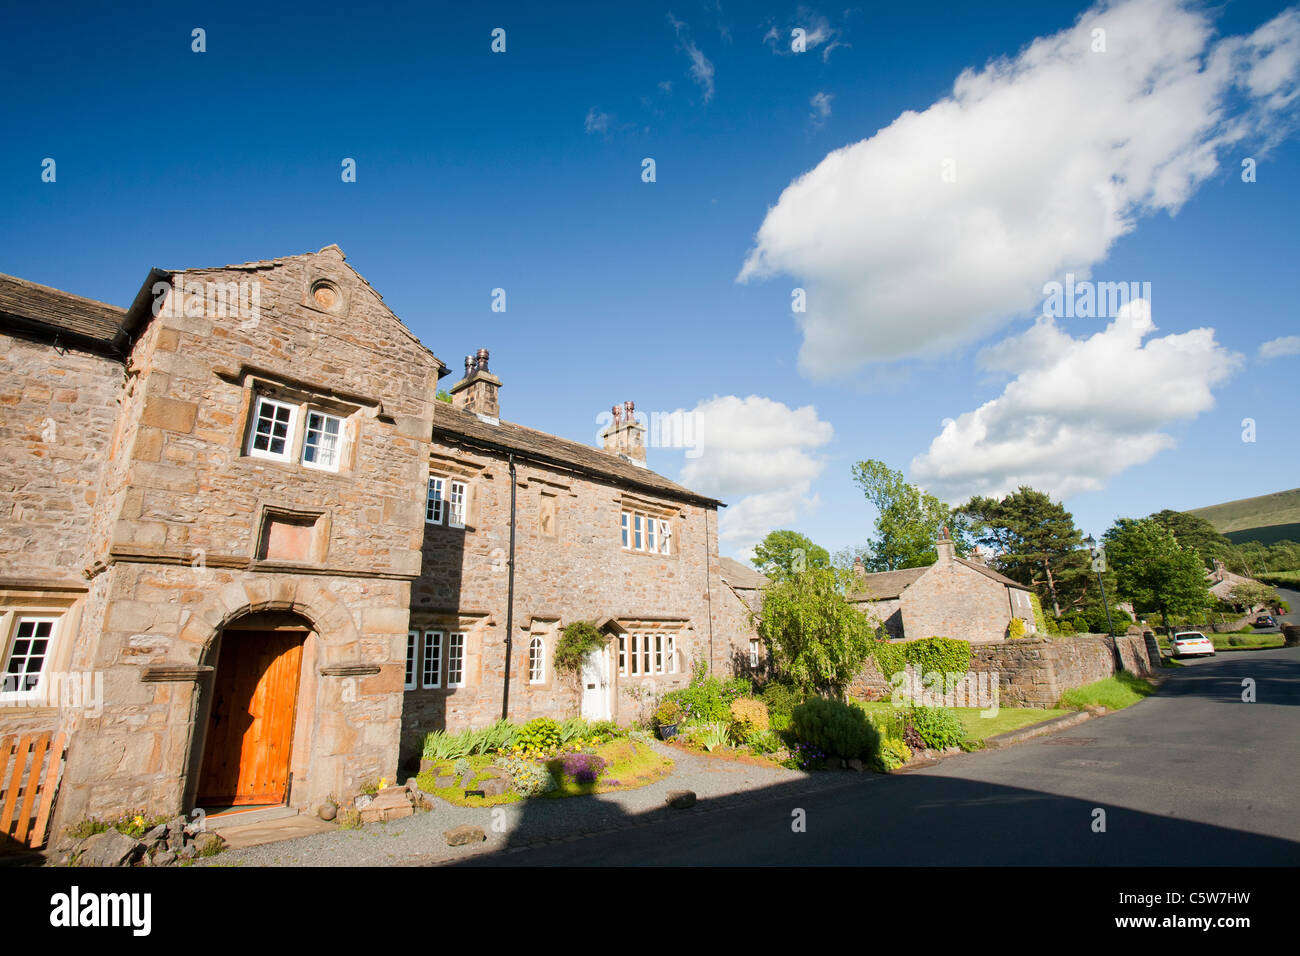 The pretty, Feudal village of Downham, nestling beneath Pendle Hill in the Ribble Valley, Lancashire, UK, - Stock Image